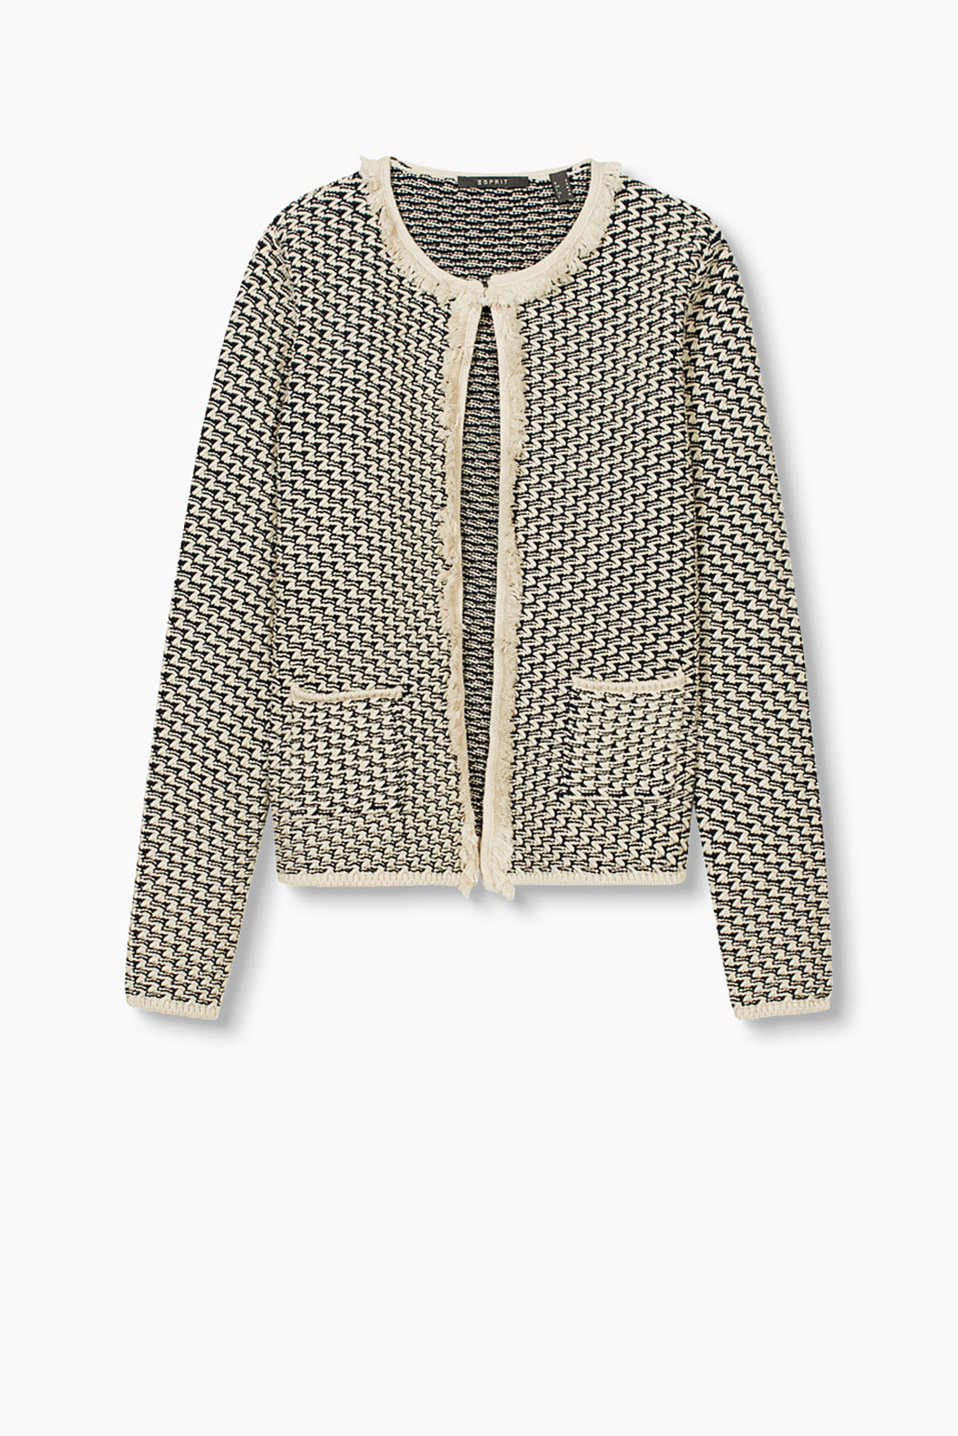 Chunky-knit cardigan with a textured, zigzag pattern and statement fringing, made of blended cotton